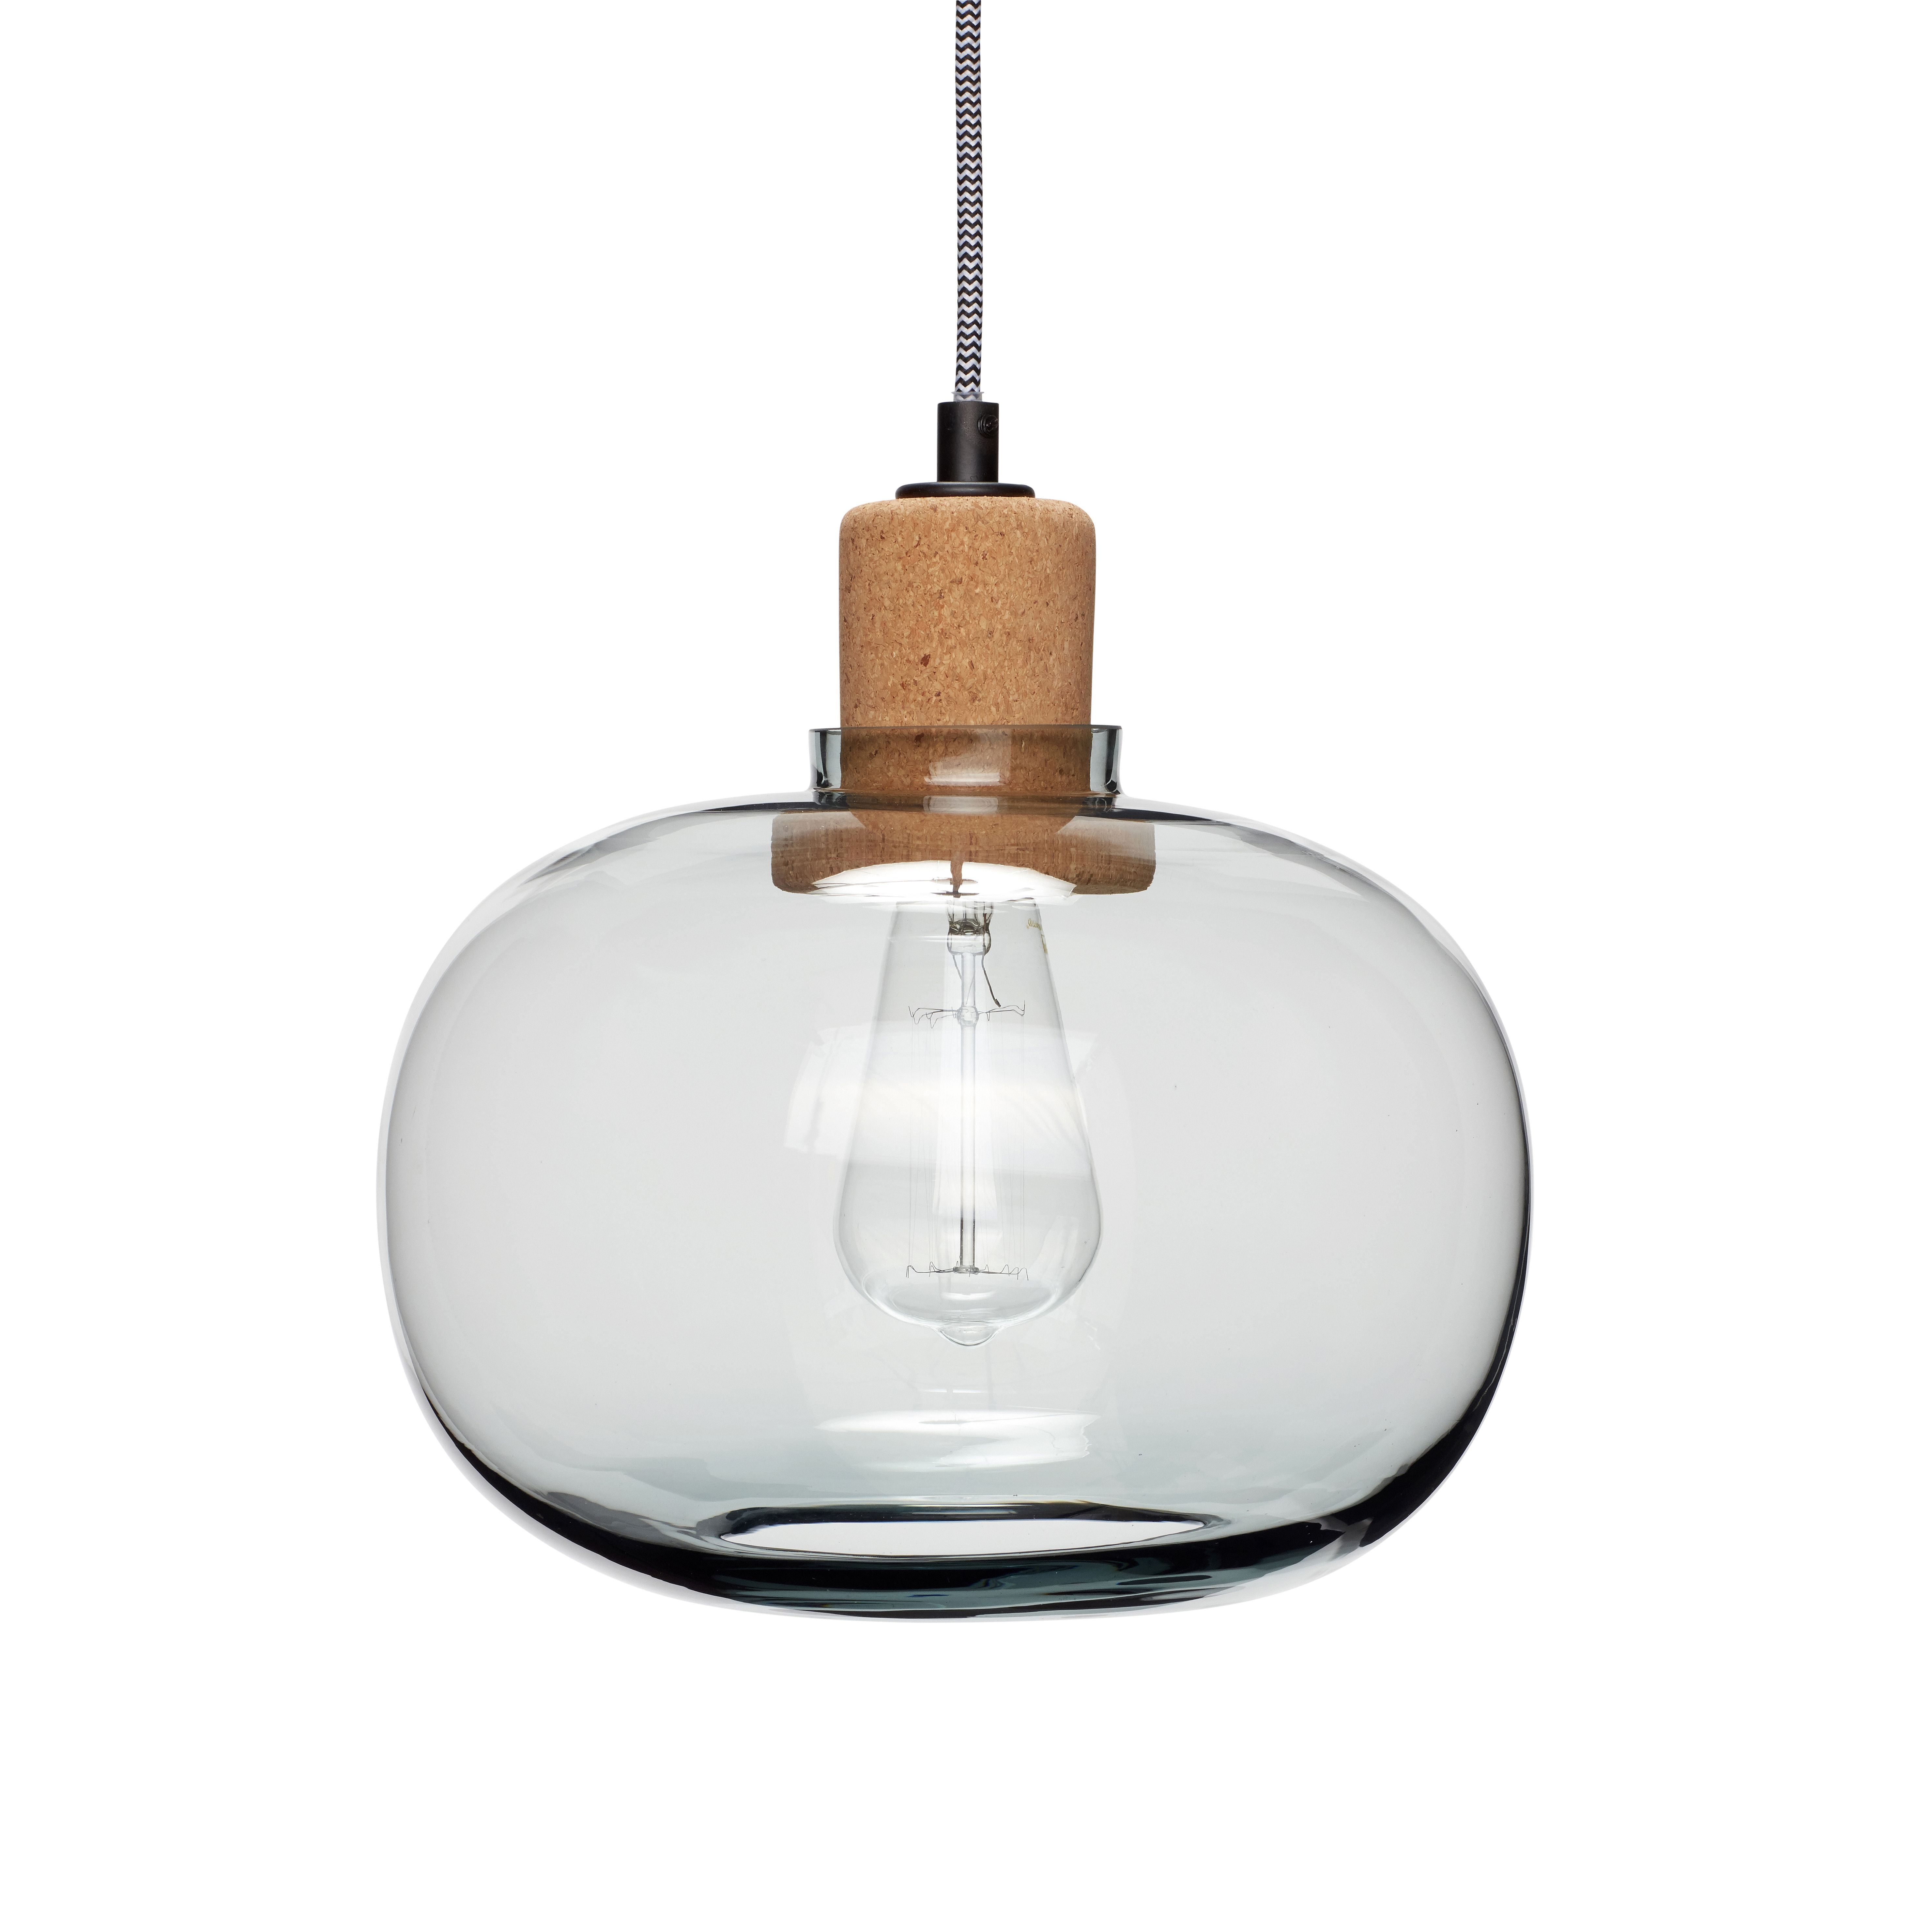 Make A Contemporary Statement In Your Home With These Stunning Glass And Cork Pendant Lights Smokey Blue Grey Solid Stylish Stopper From